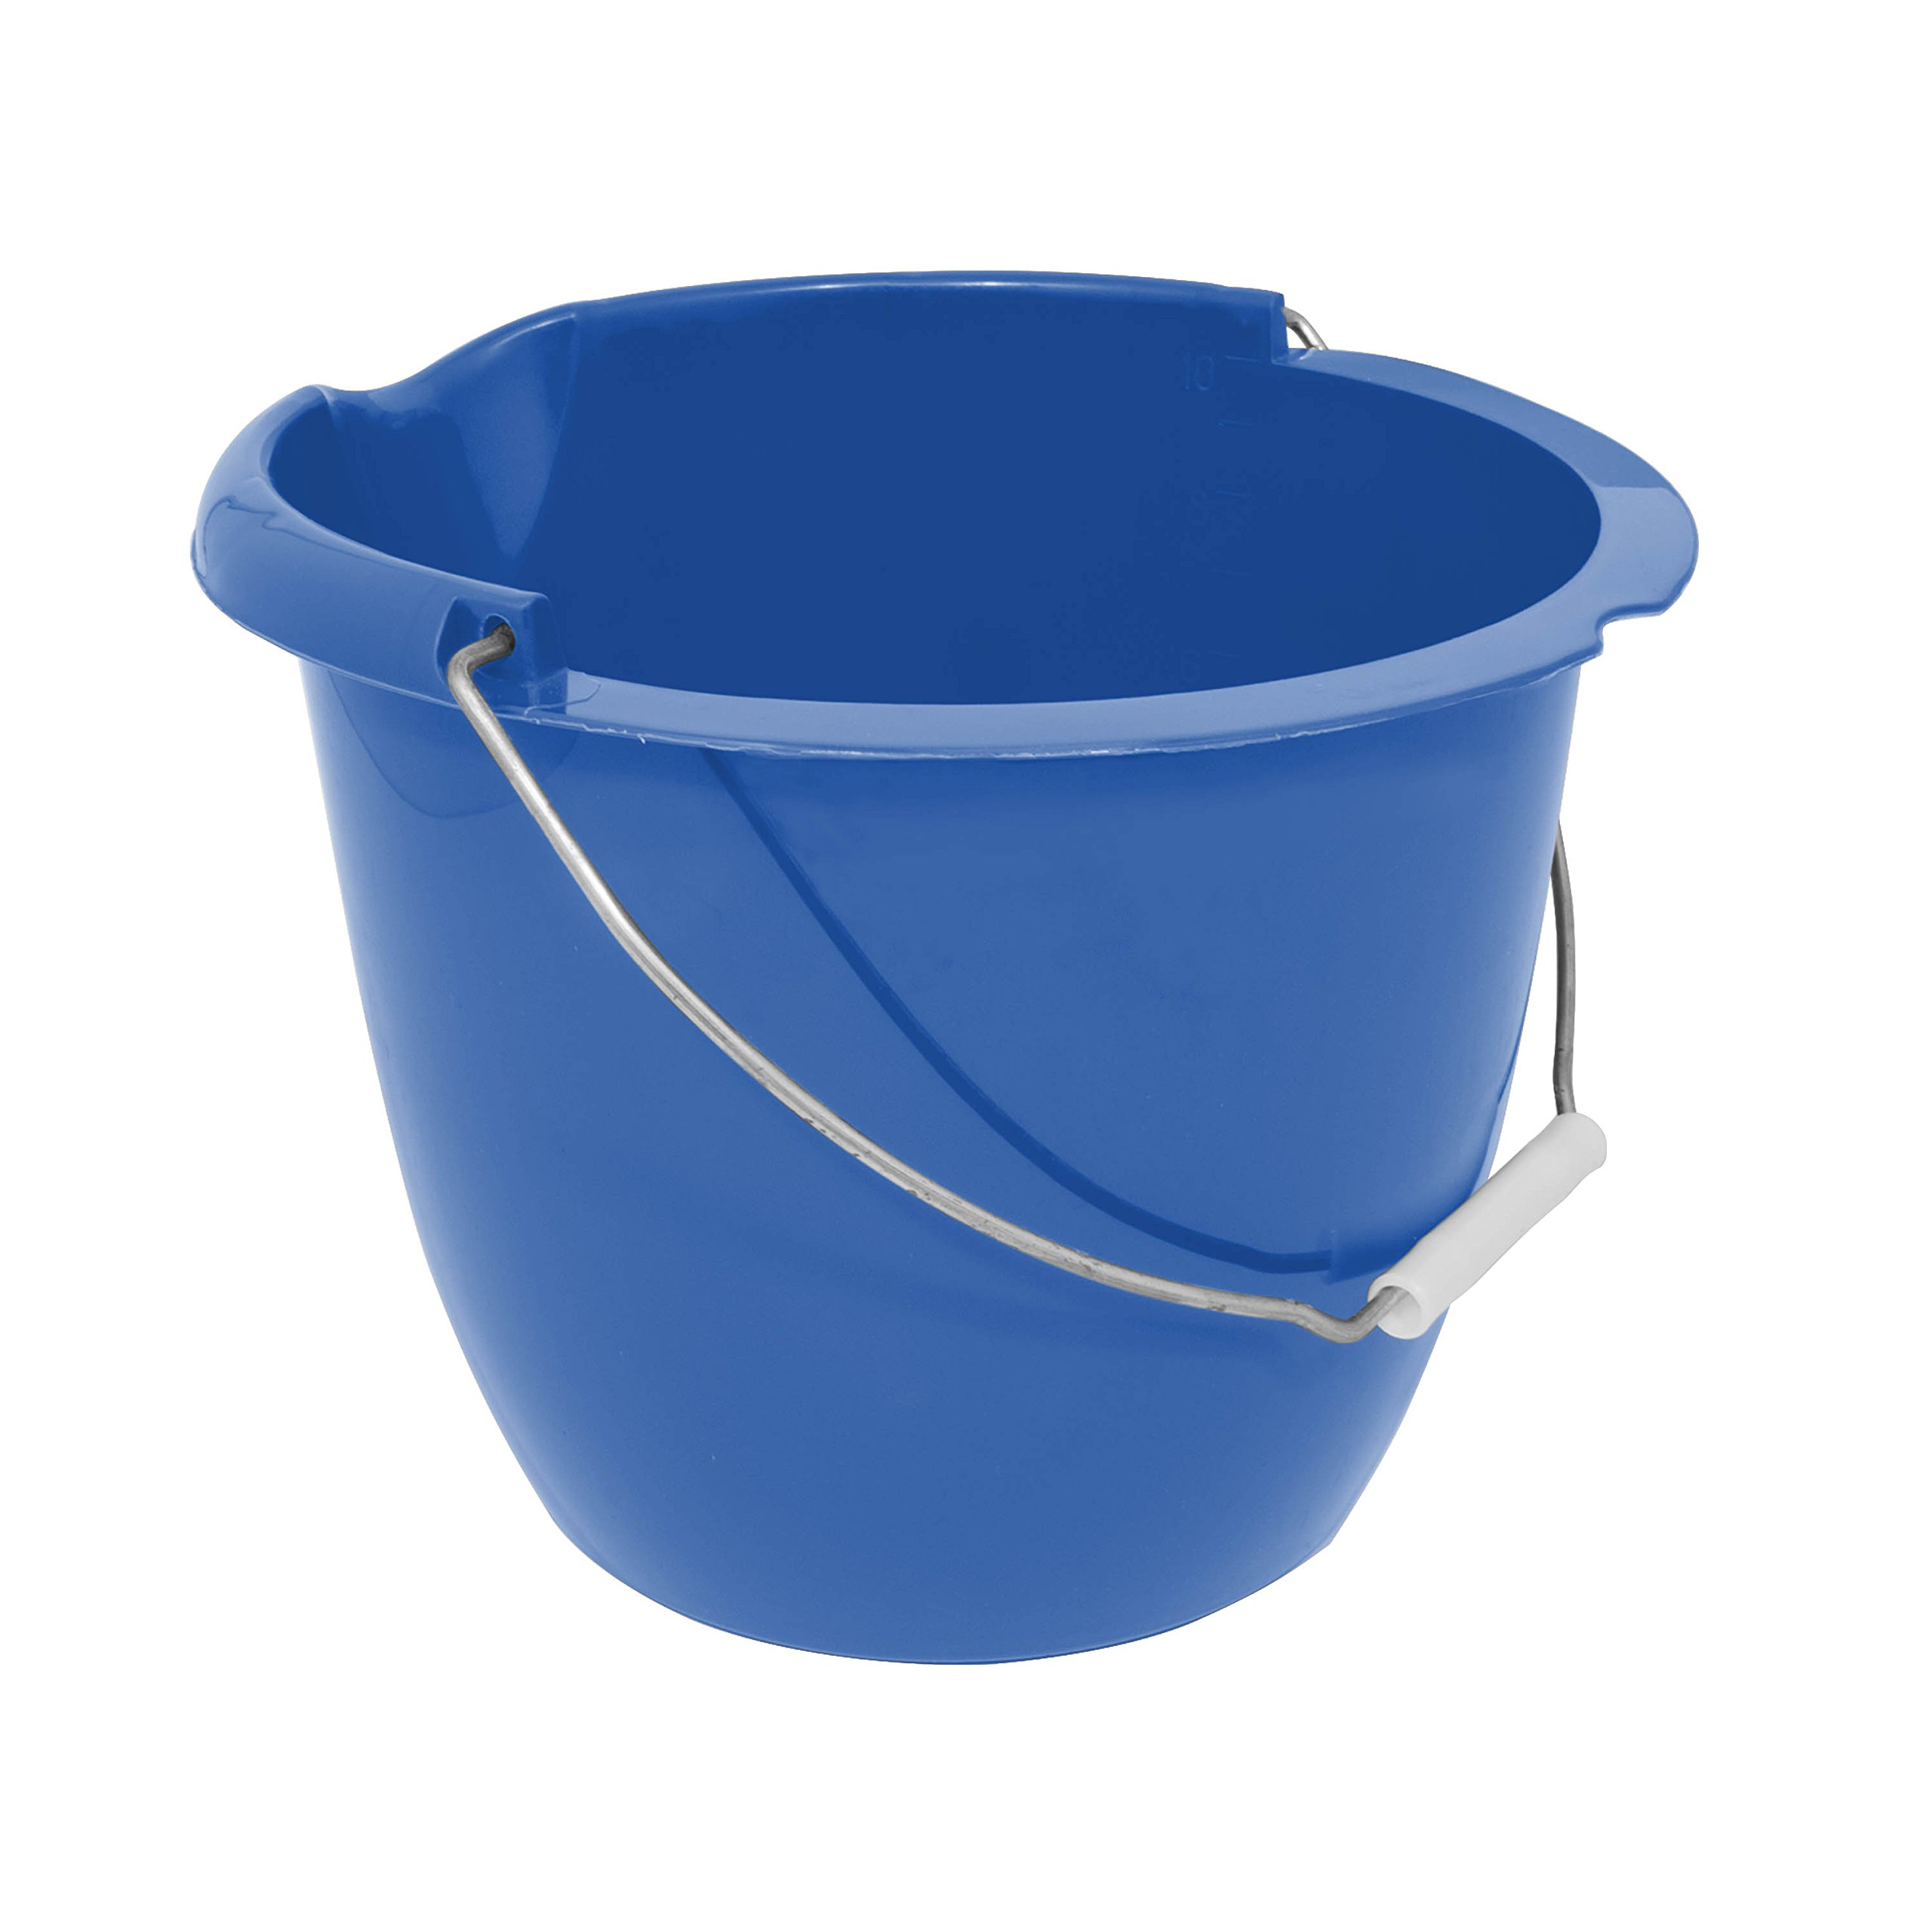 Charles Bentley Plastic Bucket with Pouring Lip 10 Litre Capacity Blue